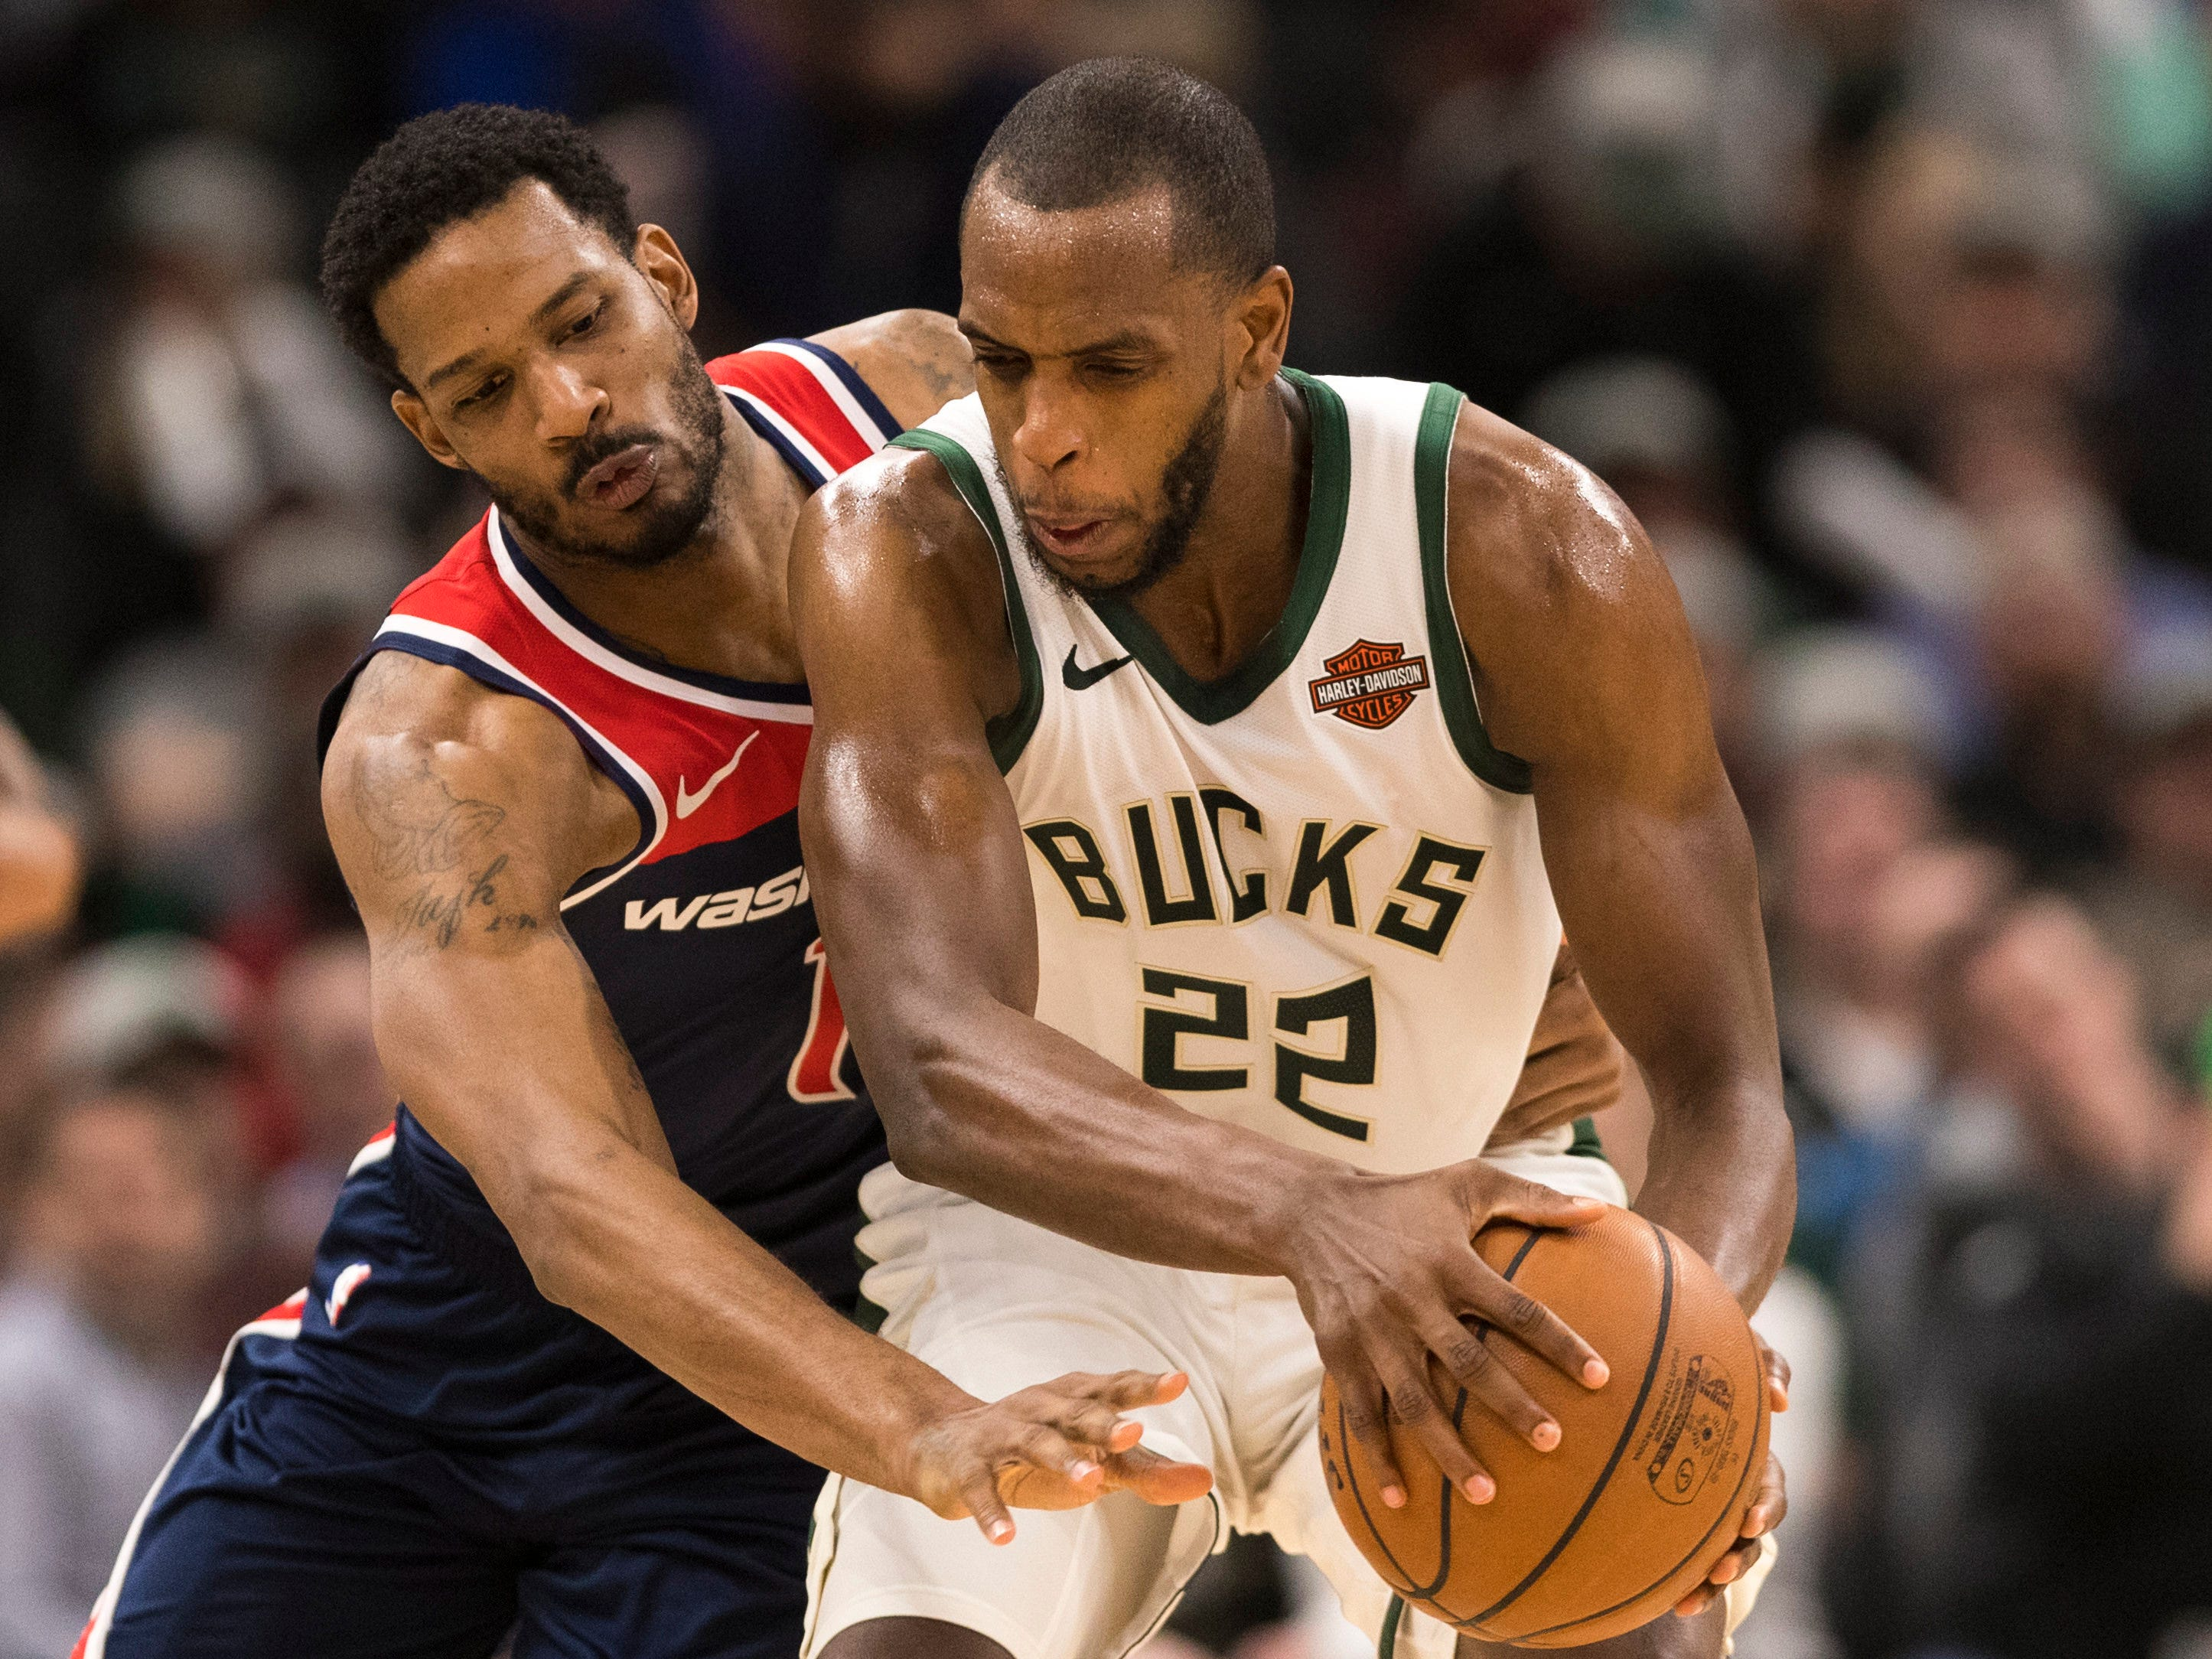 Bucks forward Khris Middleton protects the ball from the prying hands of Wizards forward Trevor Ariza during the third quarter Wednesday.